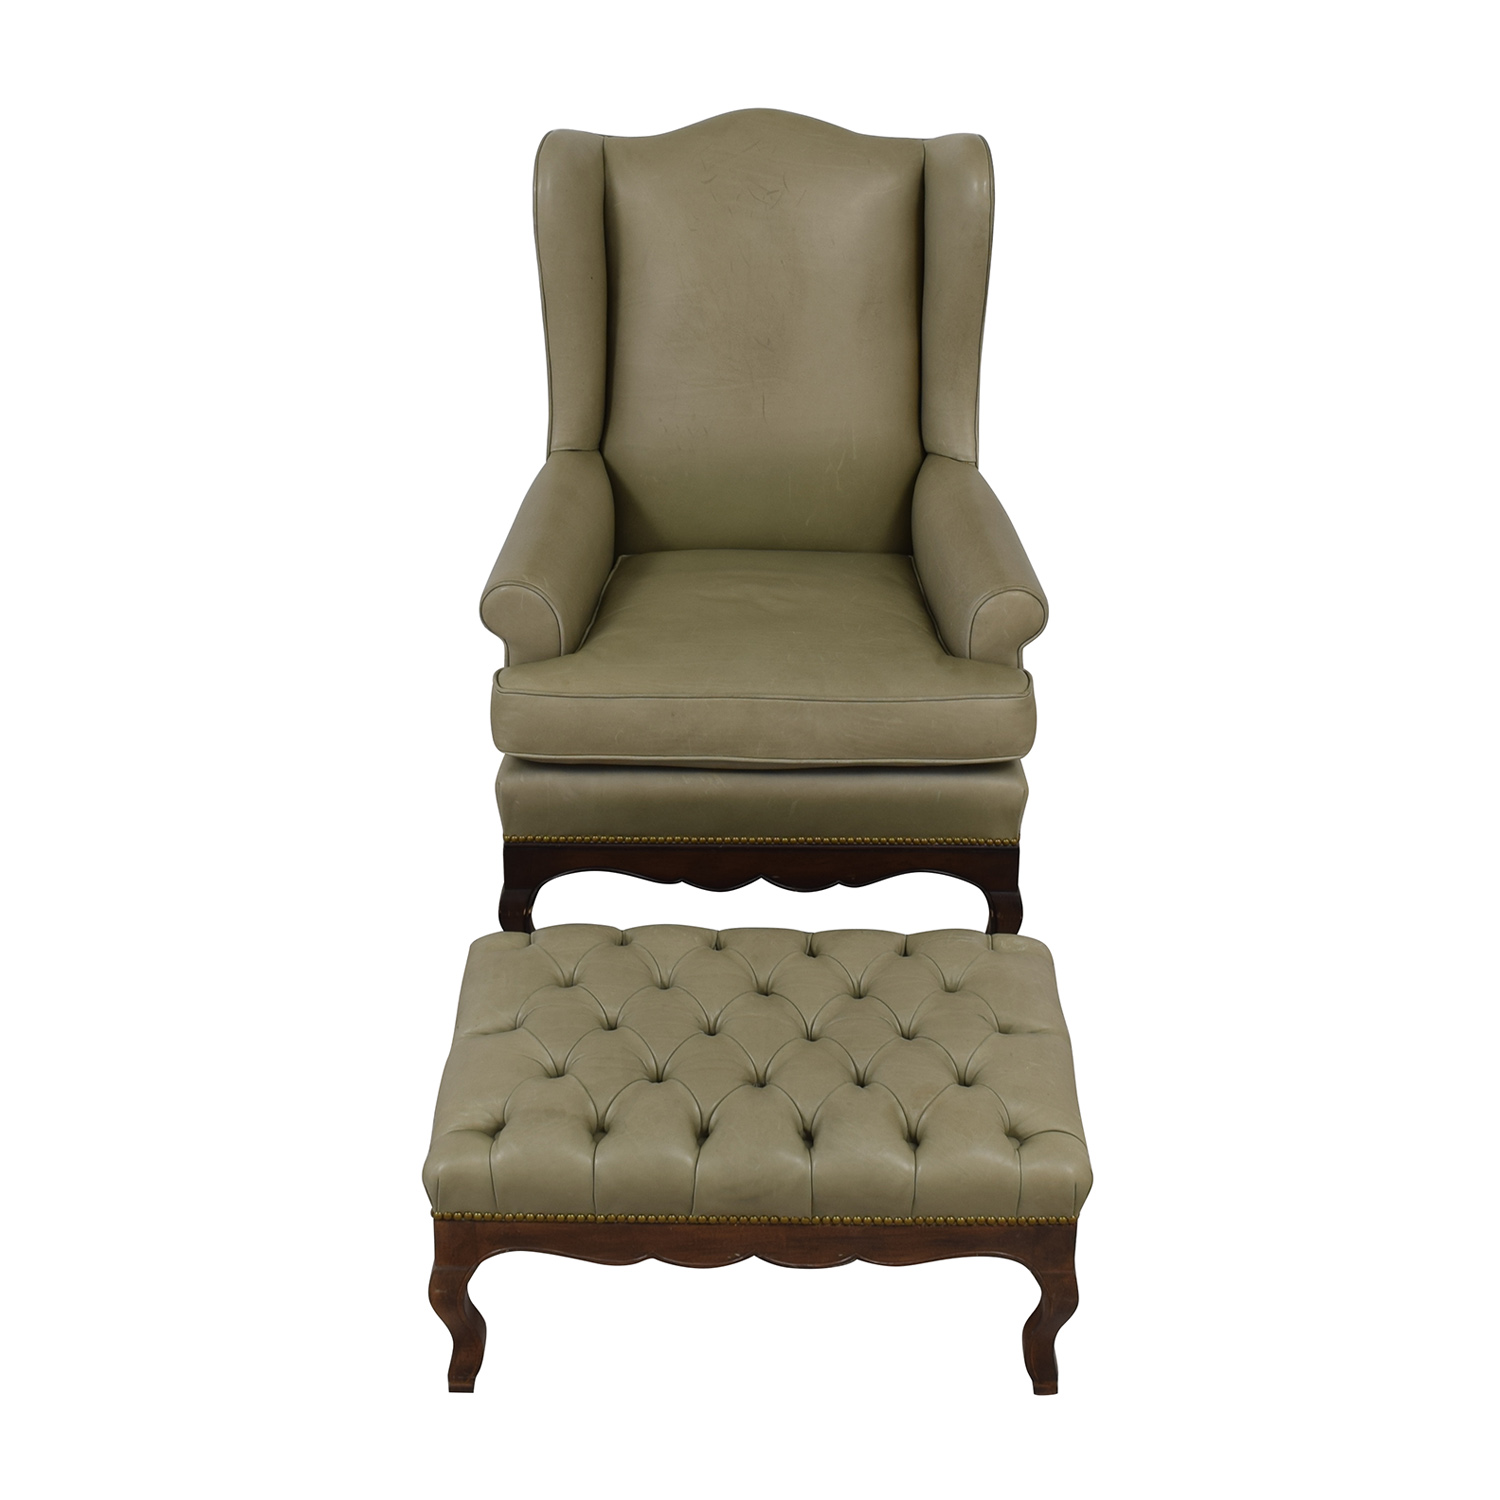 Wing Back Chairs 83 Off Green Leather Wing Back Chair With Tufted Ottoman Chairs